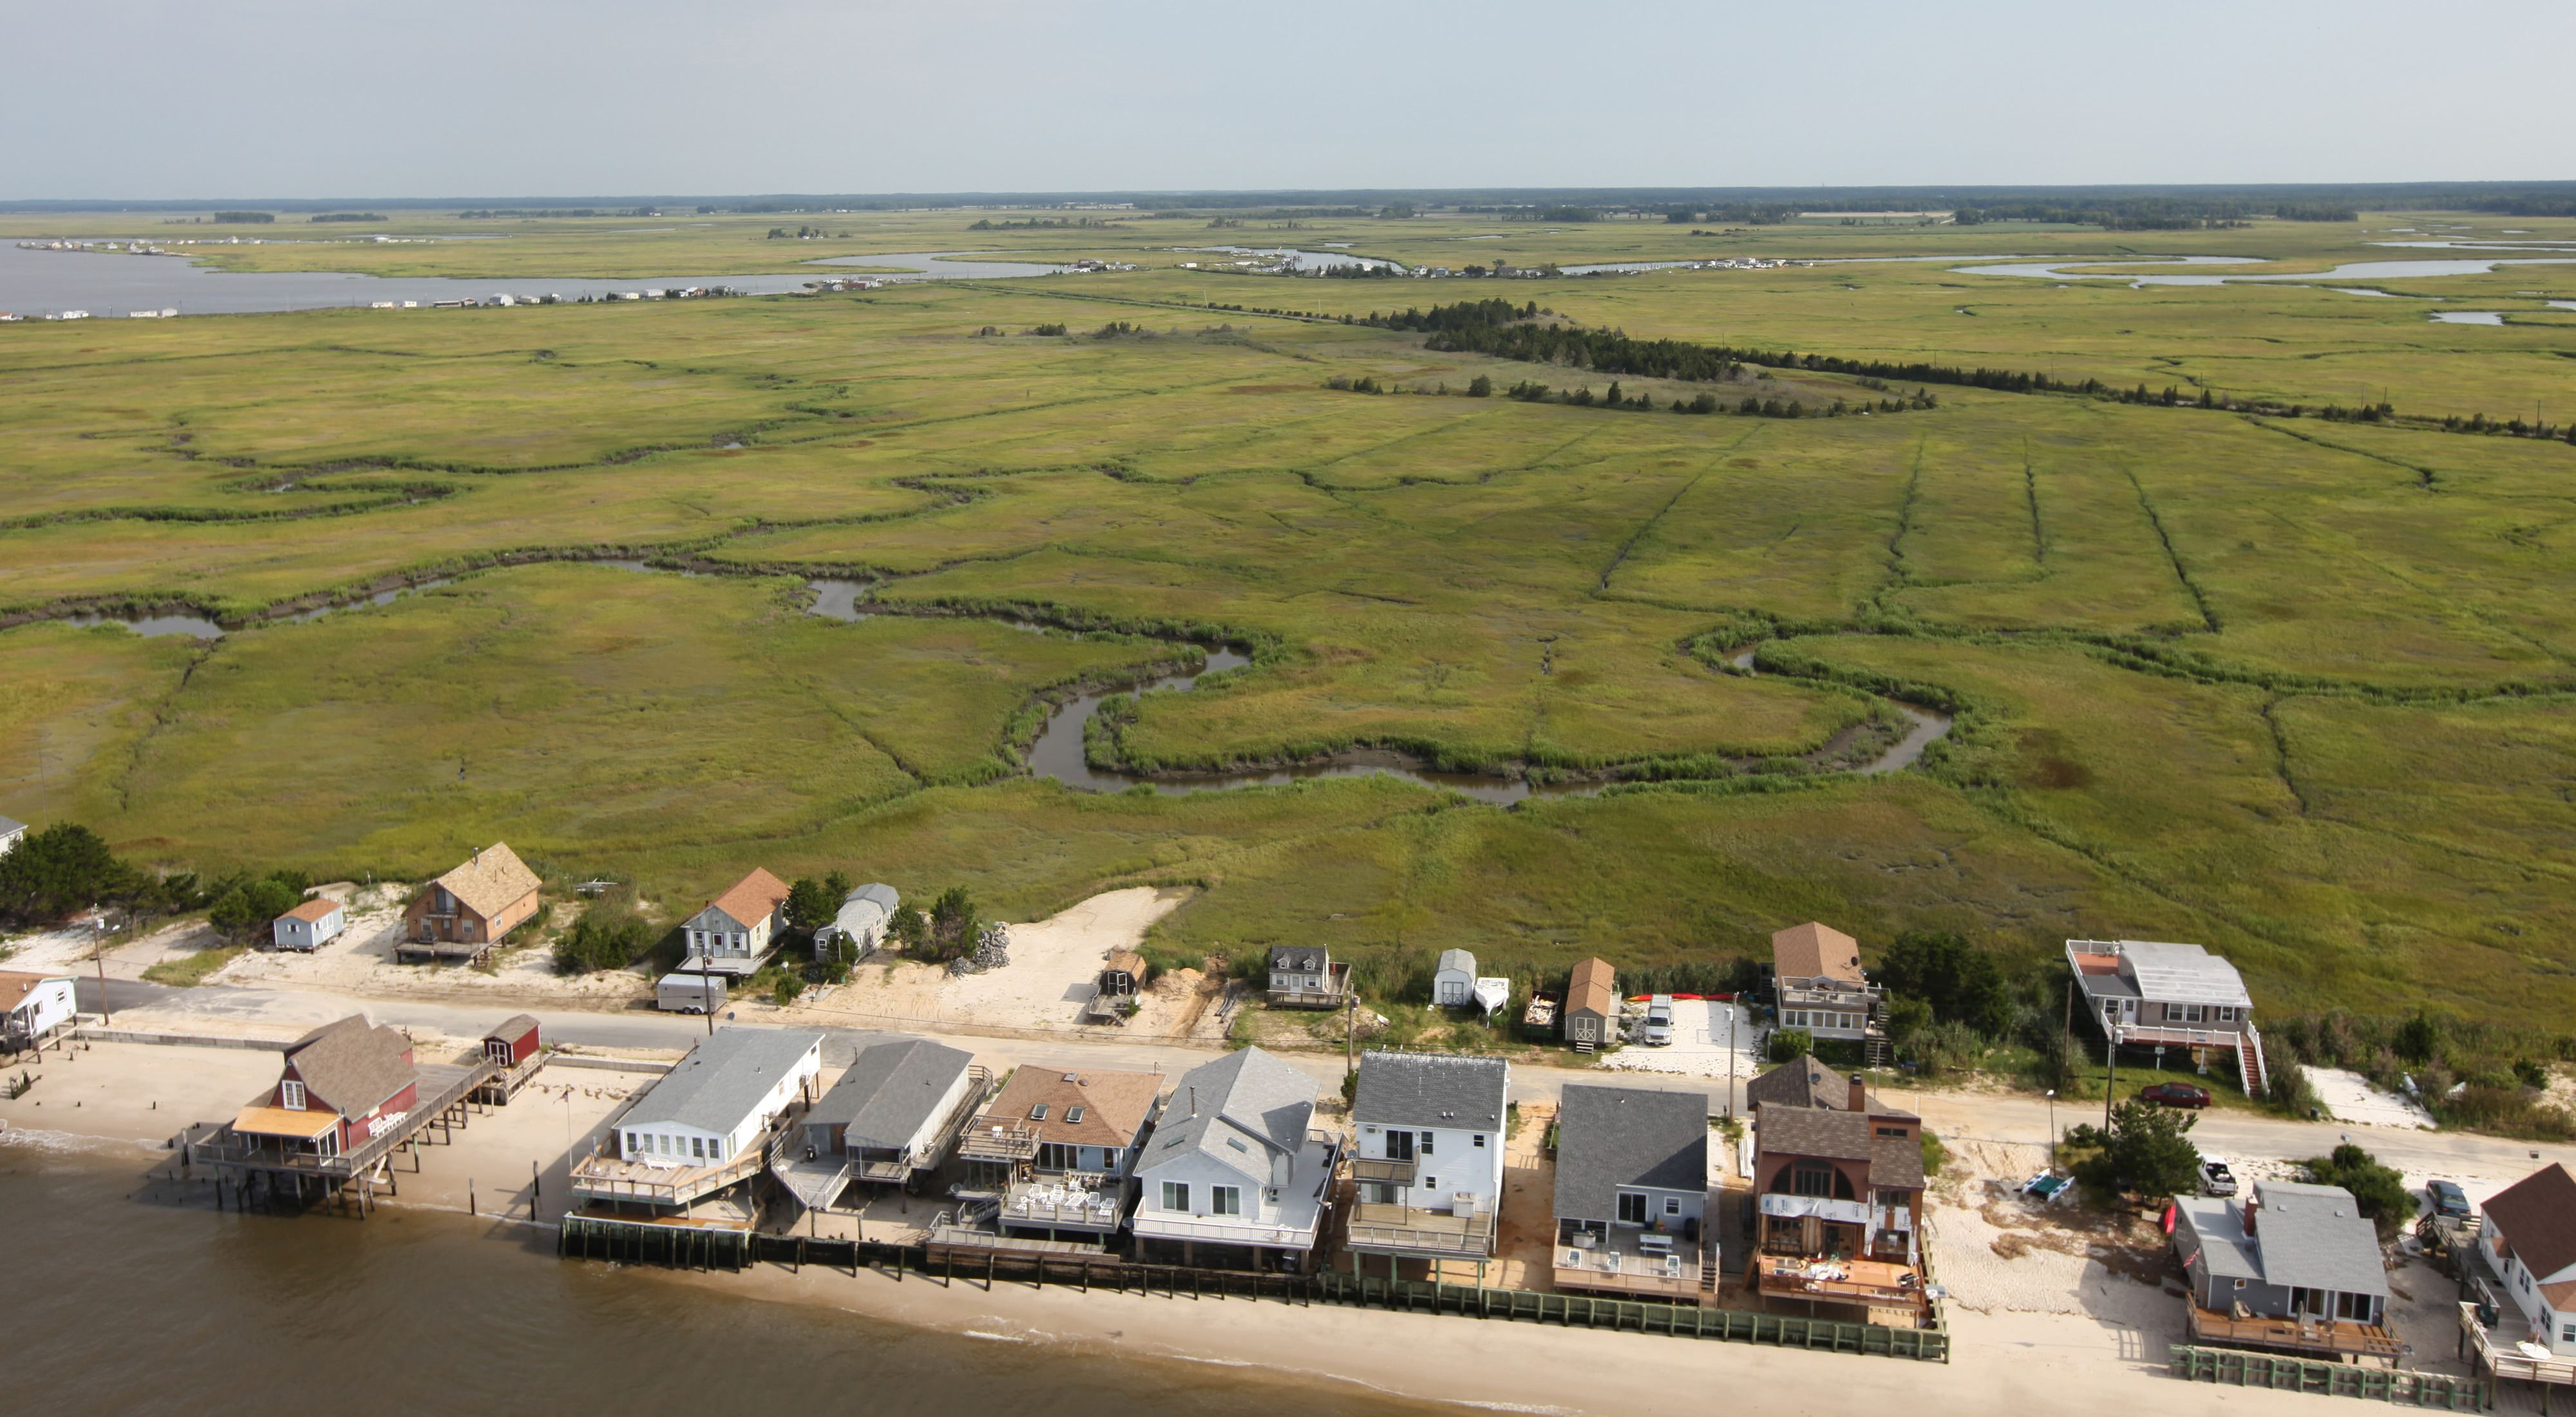 Cape May NWR